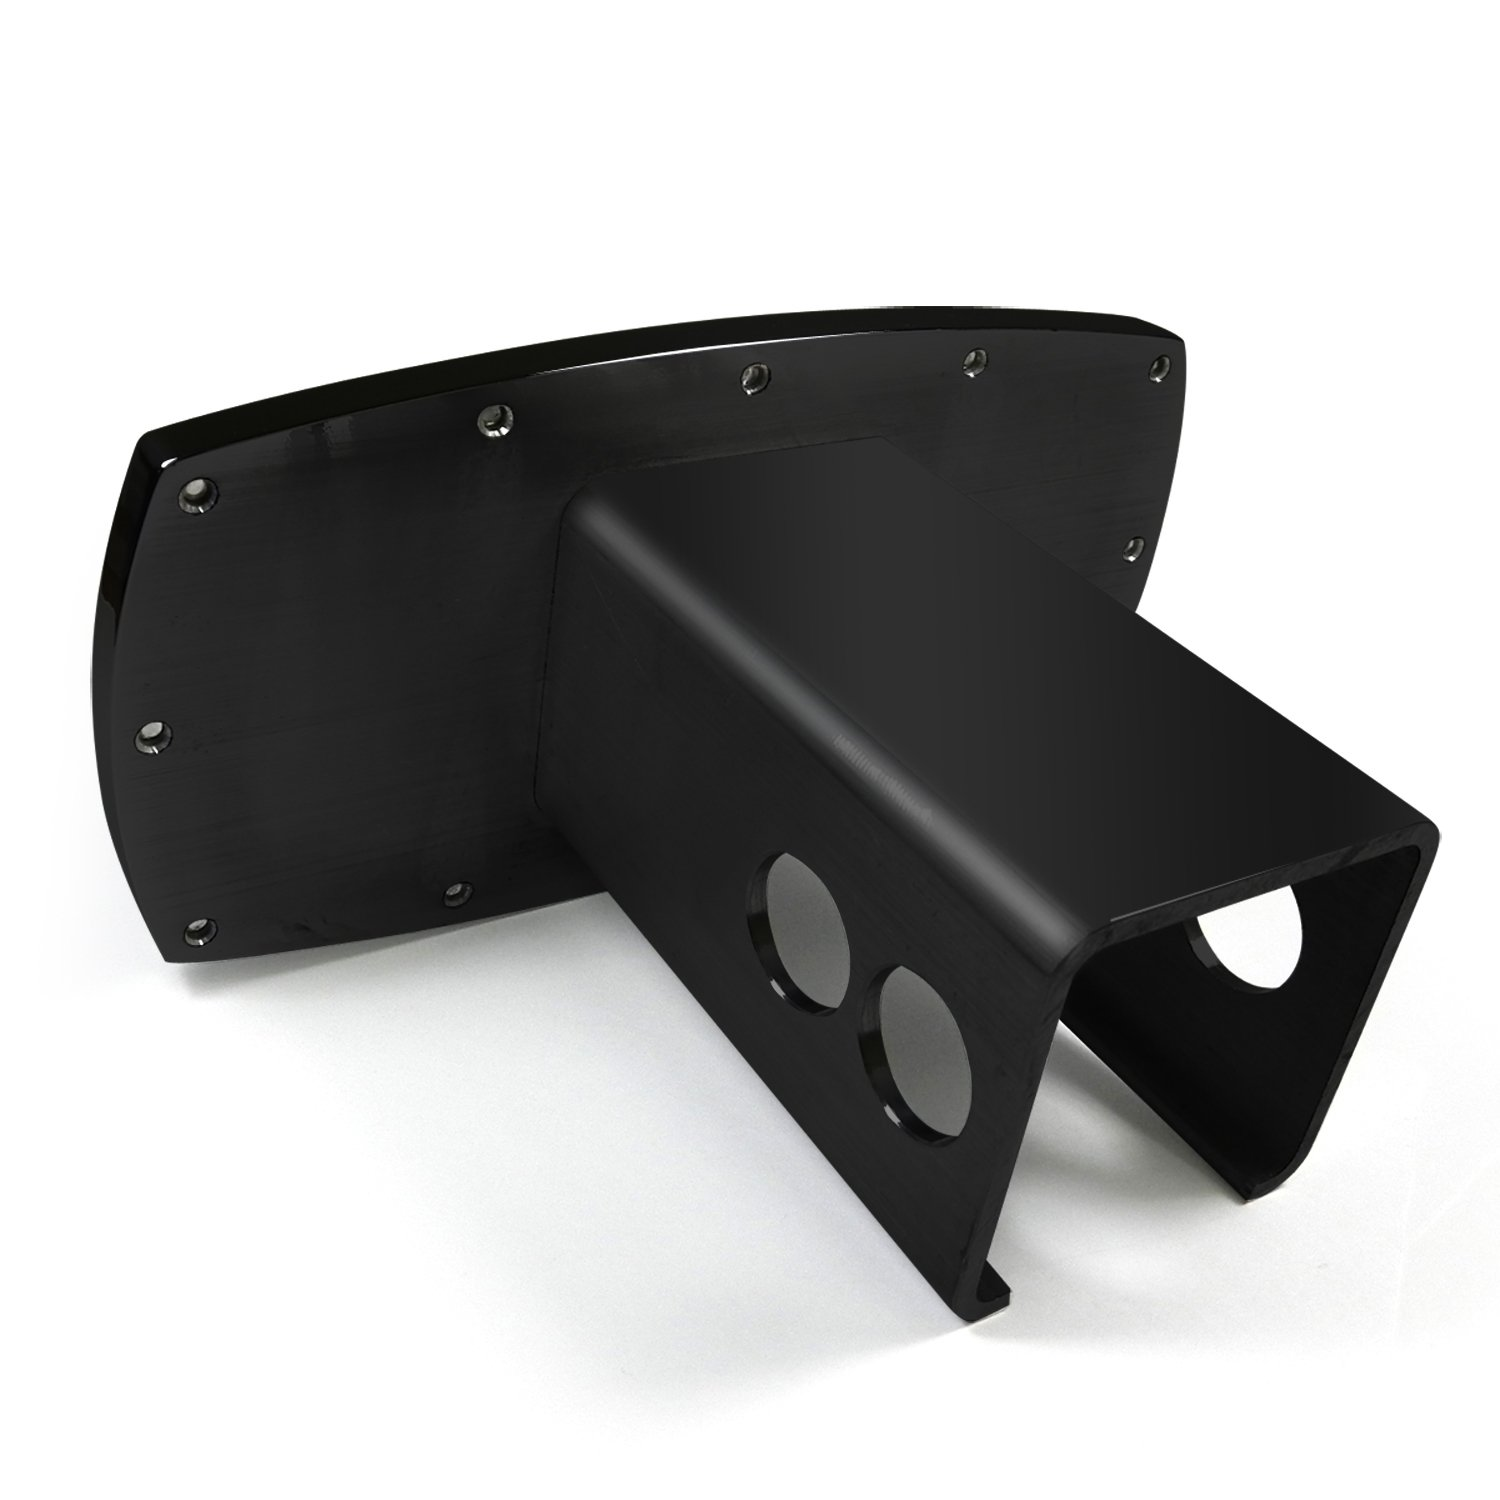 Cadillac Black Trim Billet Aluminum Tow Hitch Cover